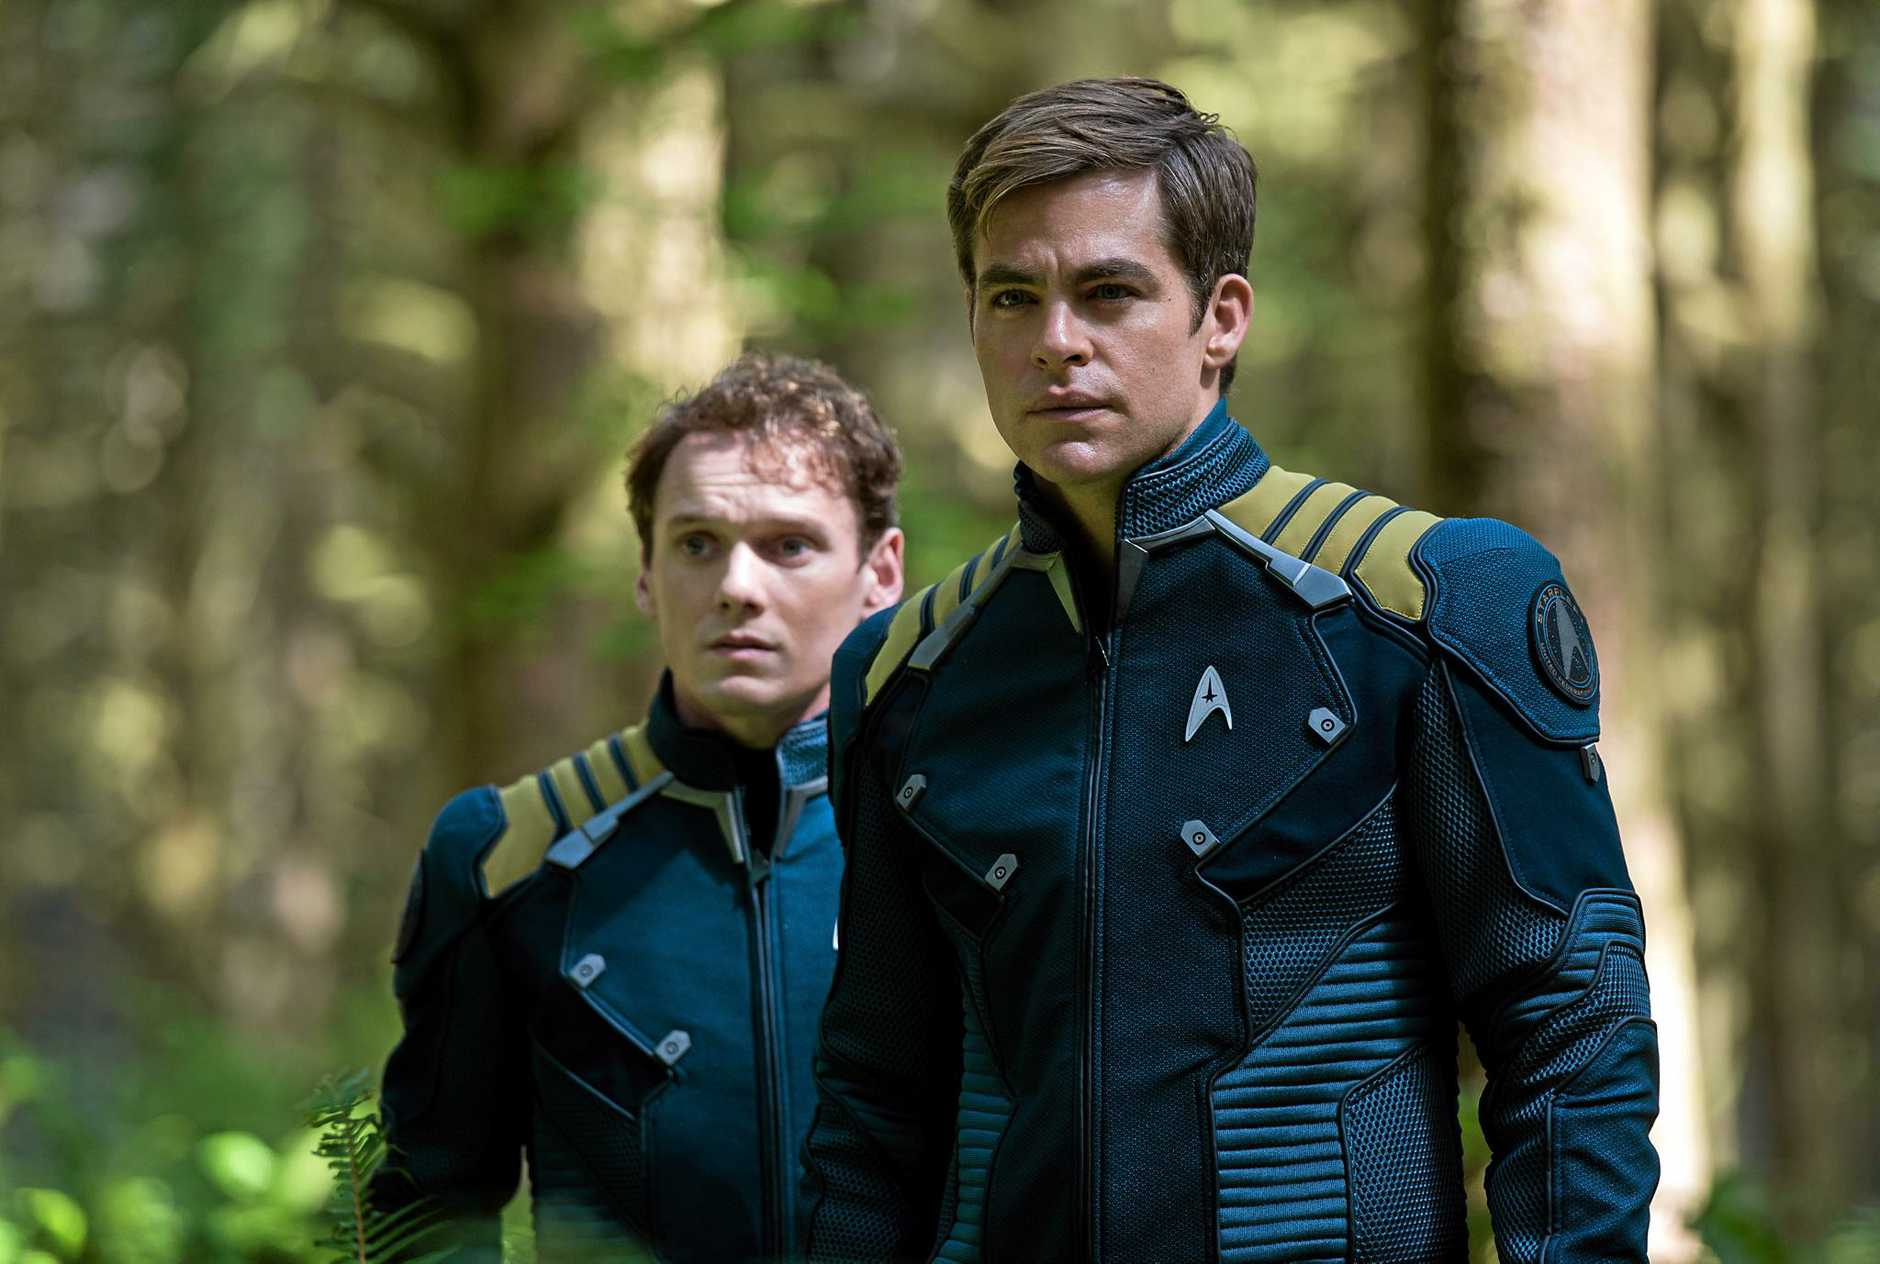 Anton Yelchin and Chris Pine in a scene from the movie Star Trek Beyond.